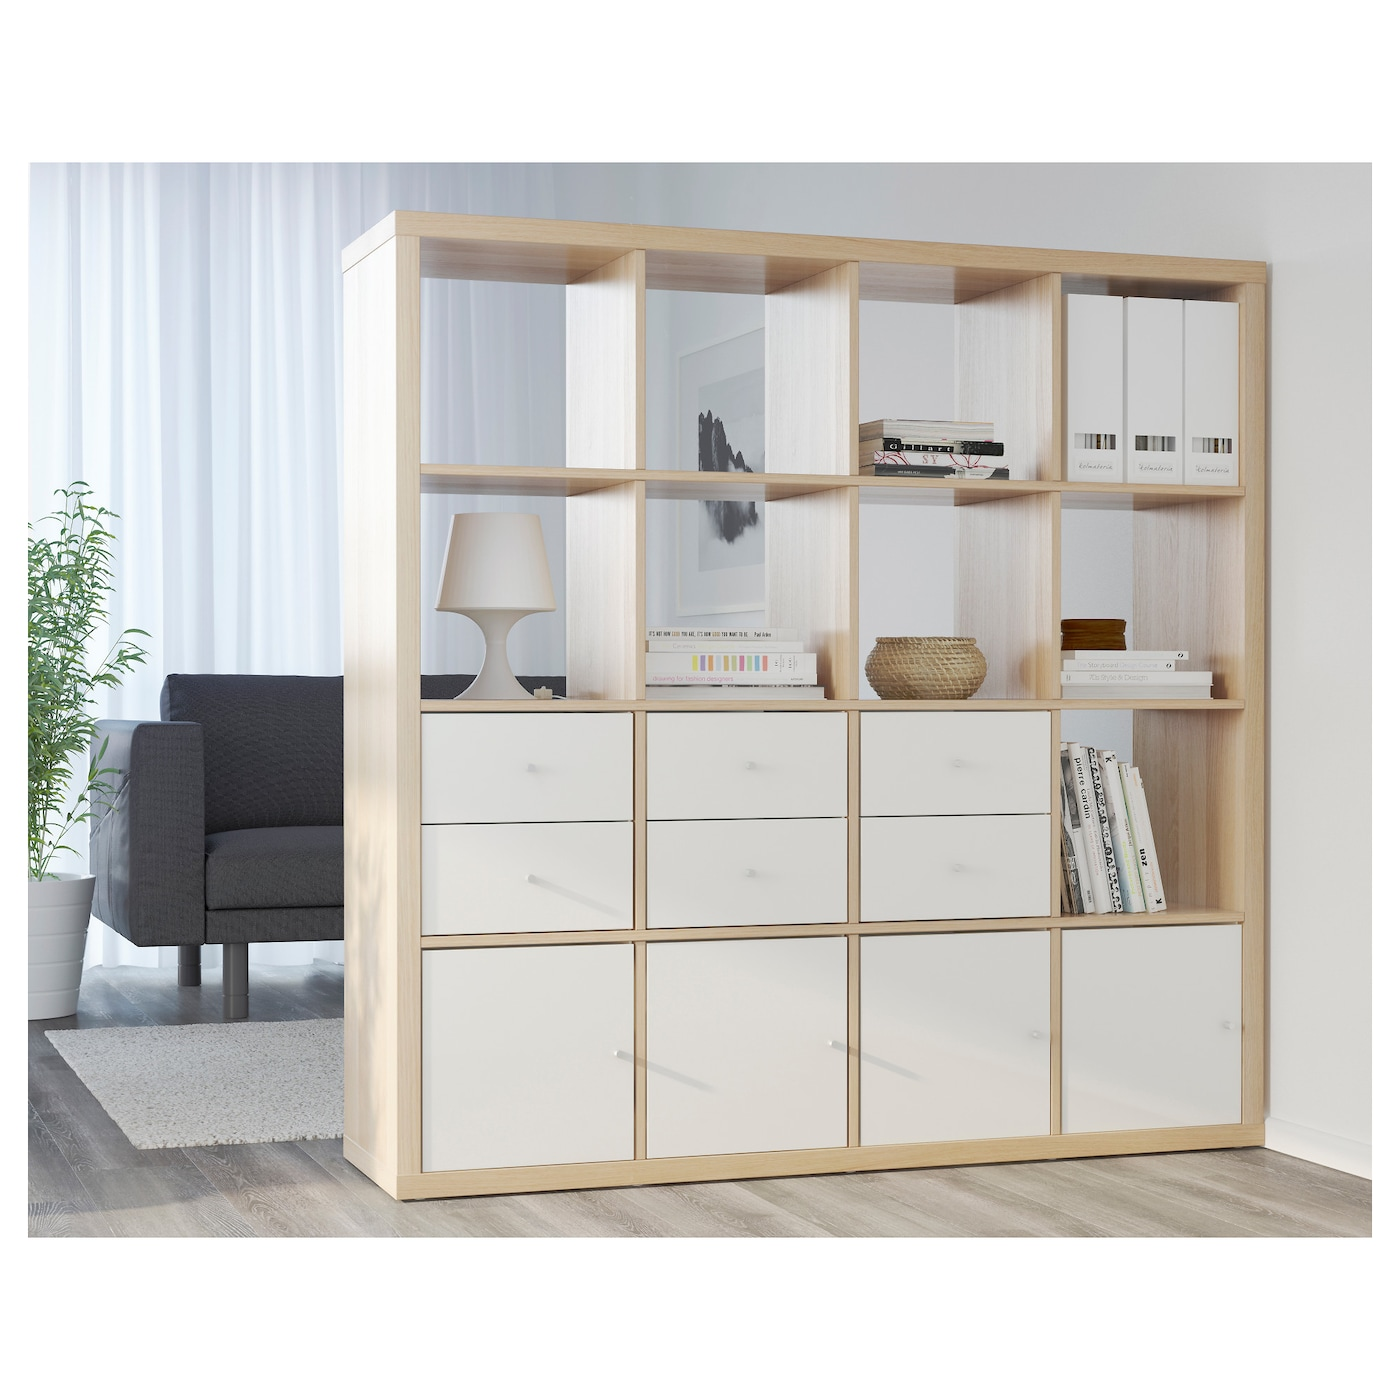 kallax insert with door white stained oak effect 33x33 cm ikea. Black Bedroom Furniture Sets. Home Design Ideas